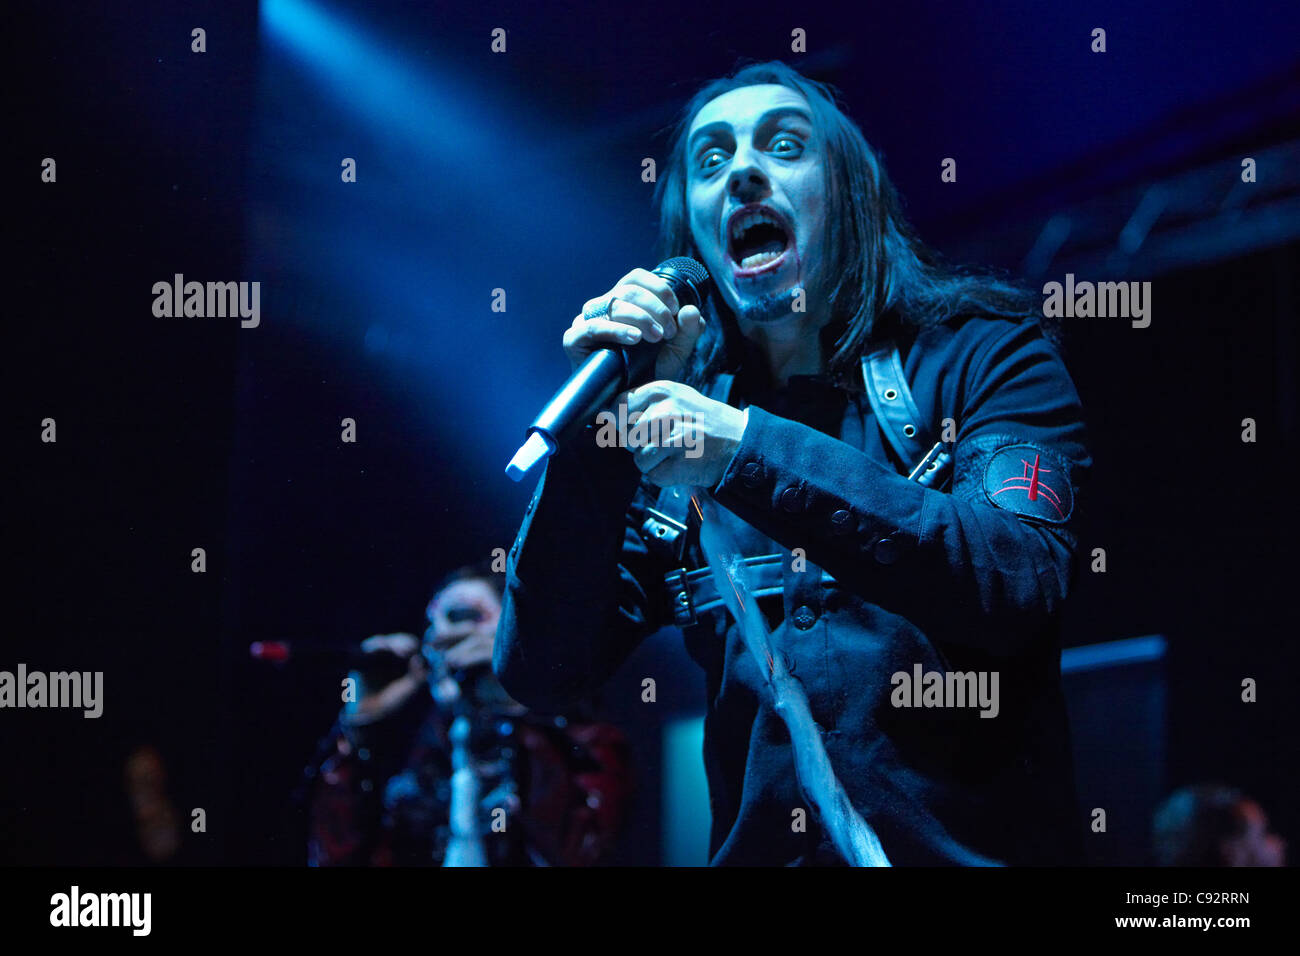 TURIN, ITALY - NOVEMBER 01: Lacuna Coil, Darkness Rising tour date on November 01, 2011 Turin, Italy. - Stock Image